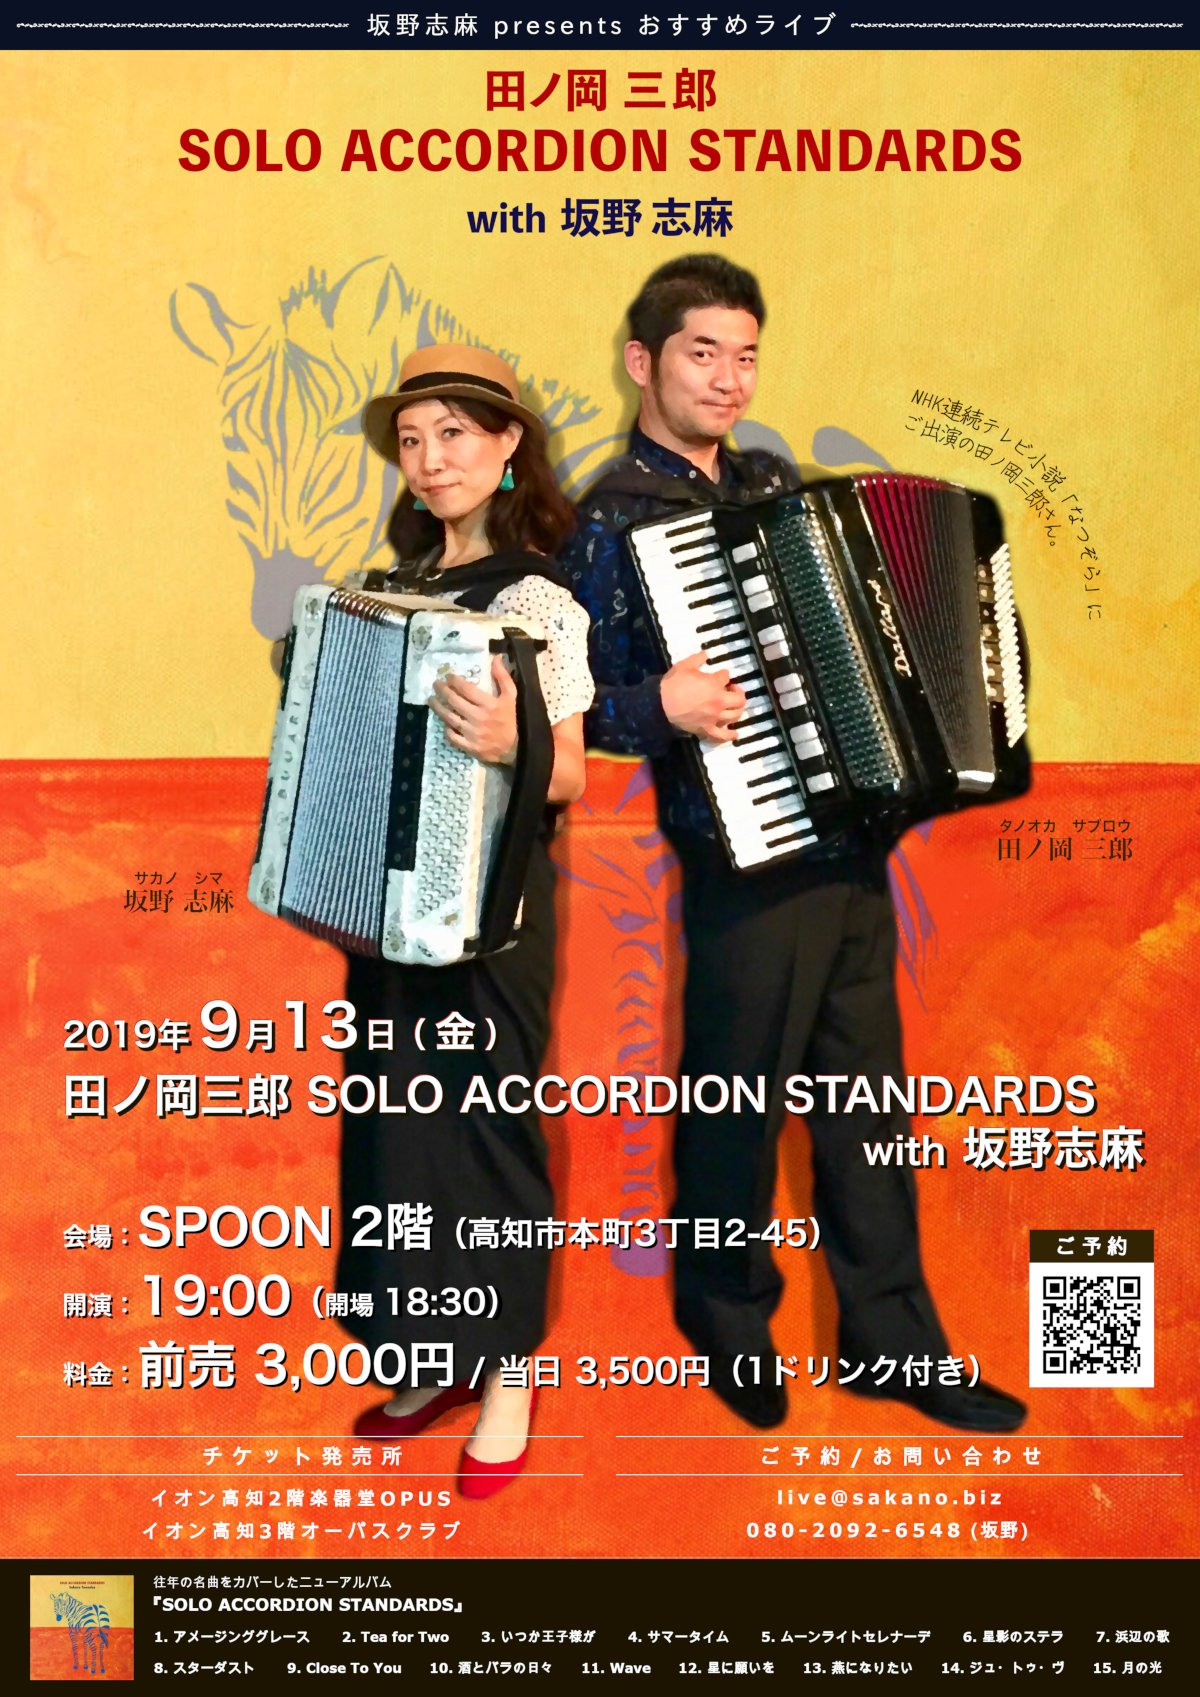 田ノ岡三郎 SOLO ACCORDION STANDARDS with 坂野志麻